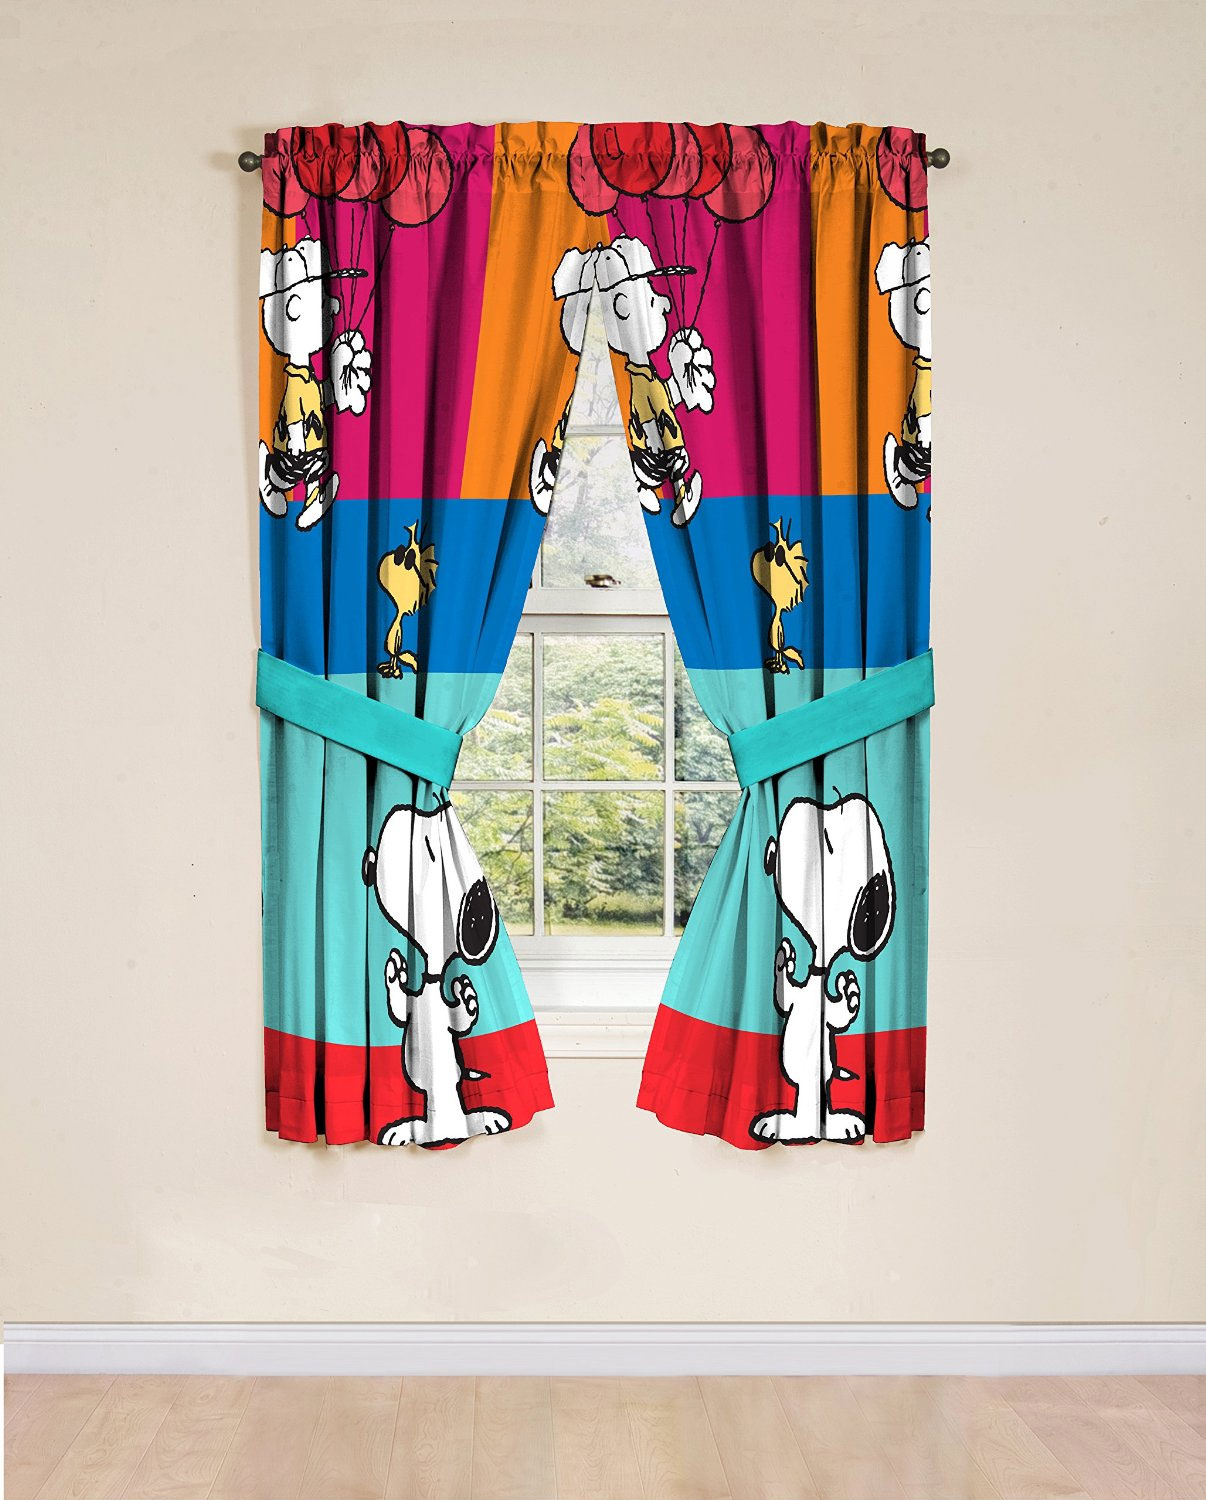 Peanuts Window Drapes, Set of 2 - Walmart.com for Window With Curtains Illustration  181obs